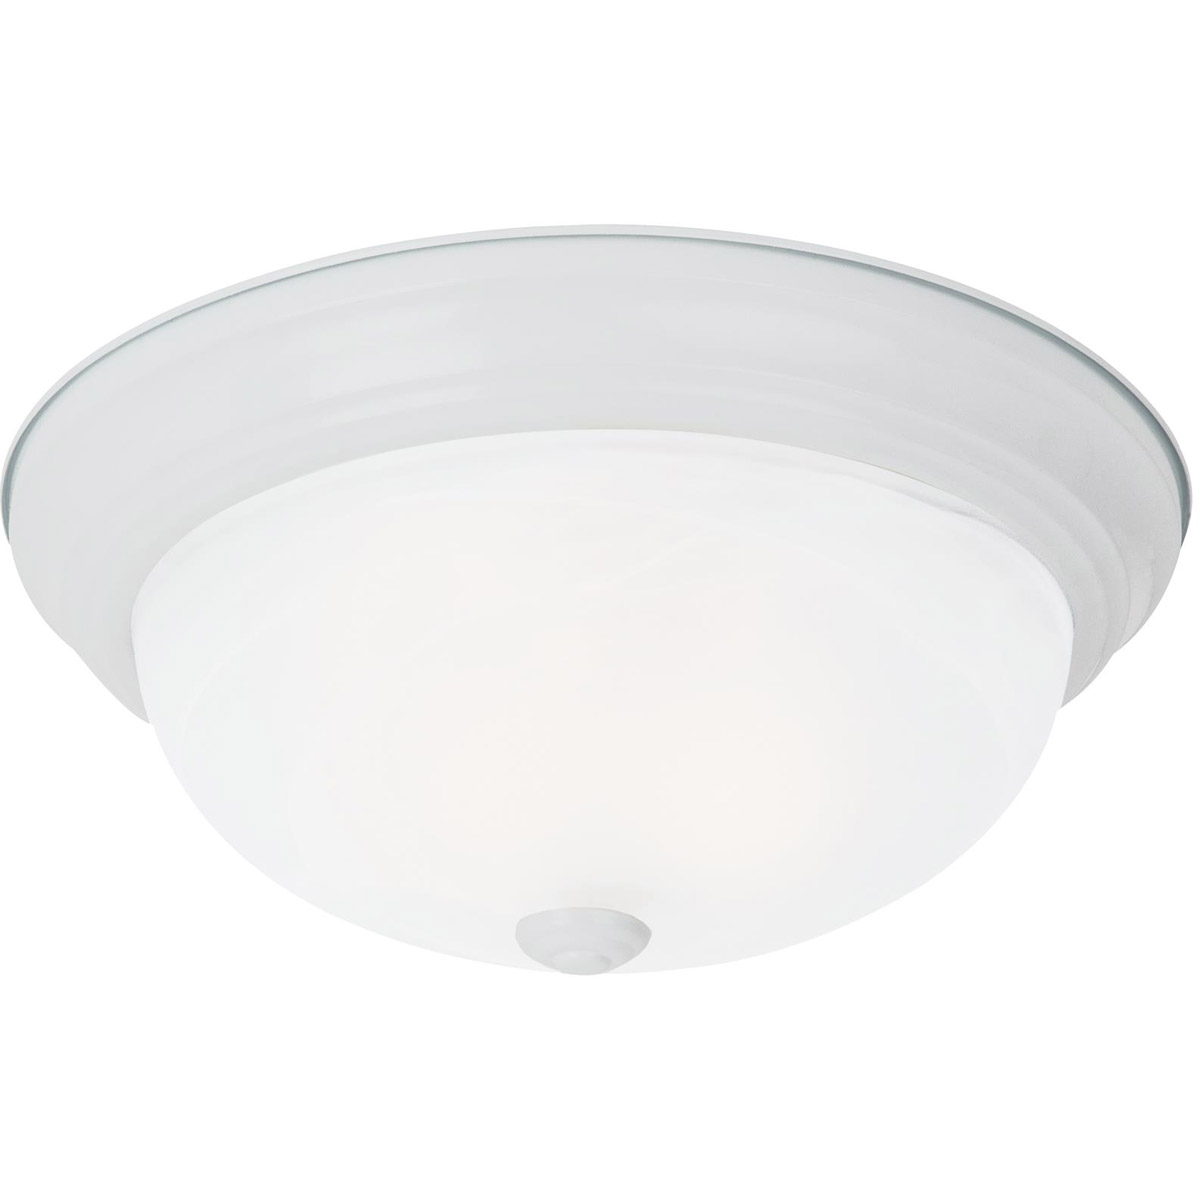 Sea Gull Lighting Windgate 1 Light Flush Mount in White 75940-15